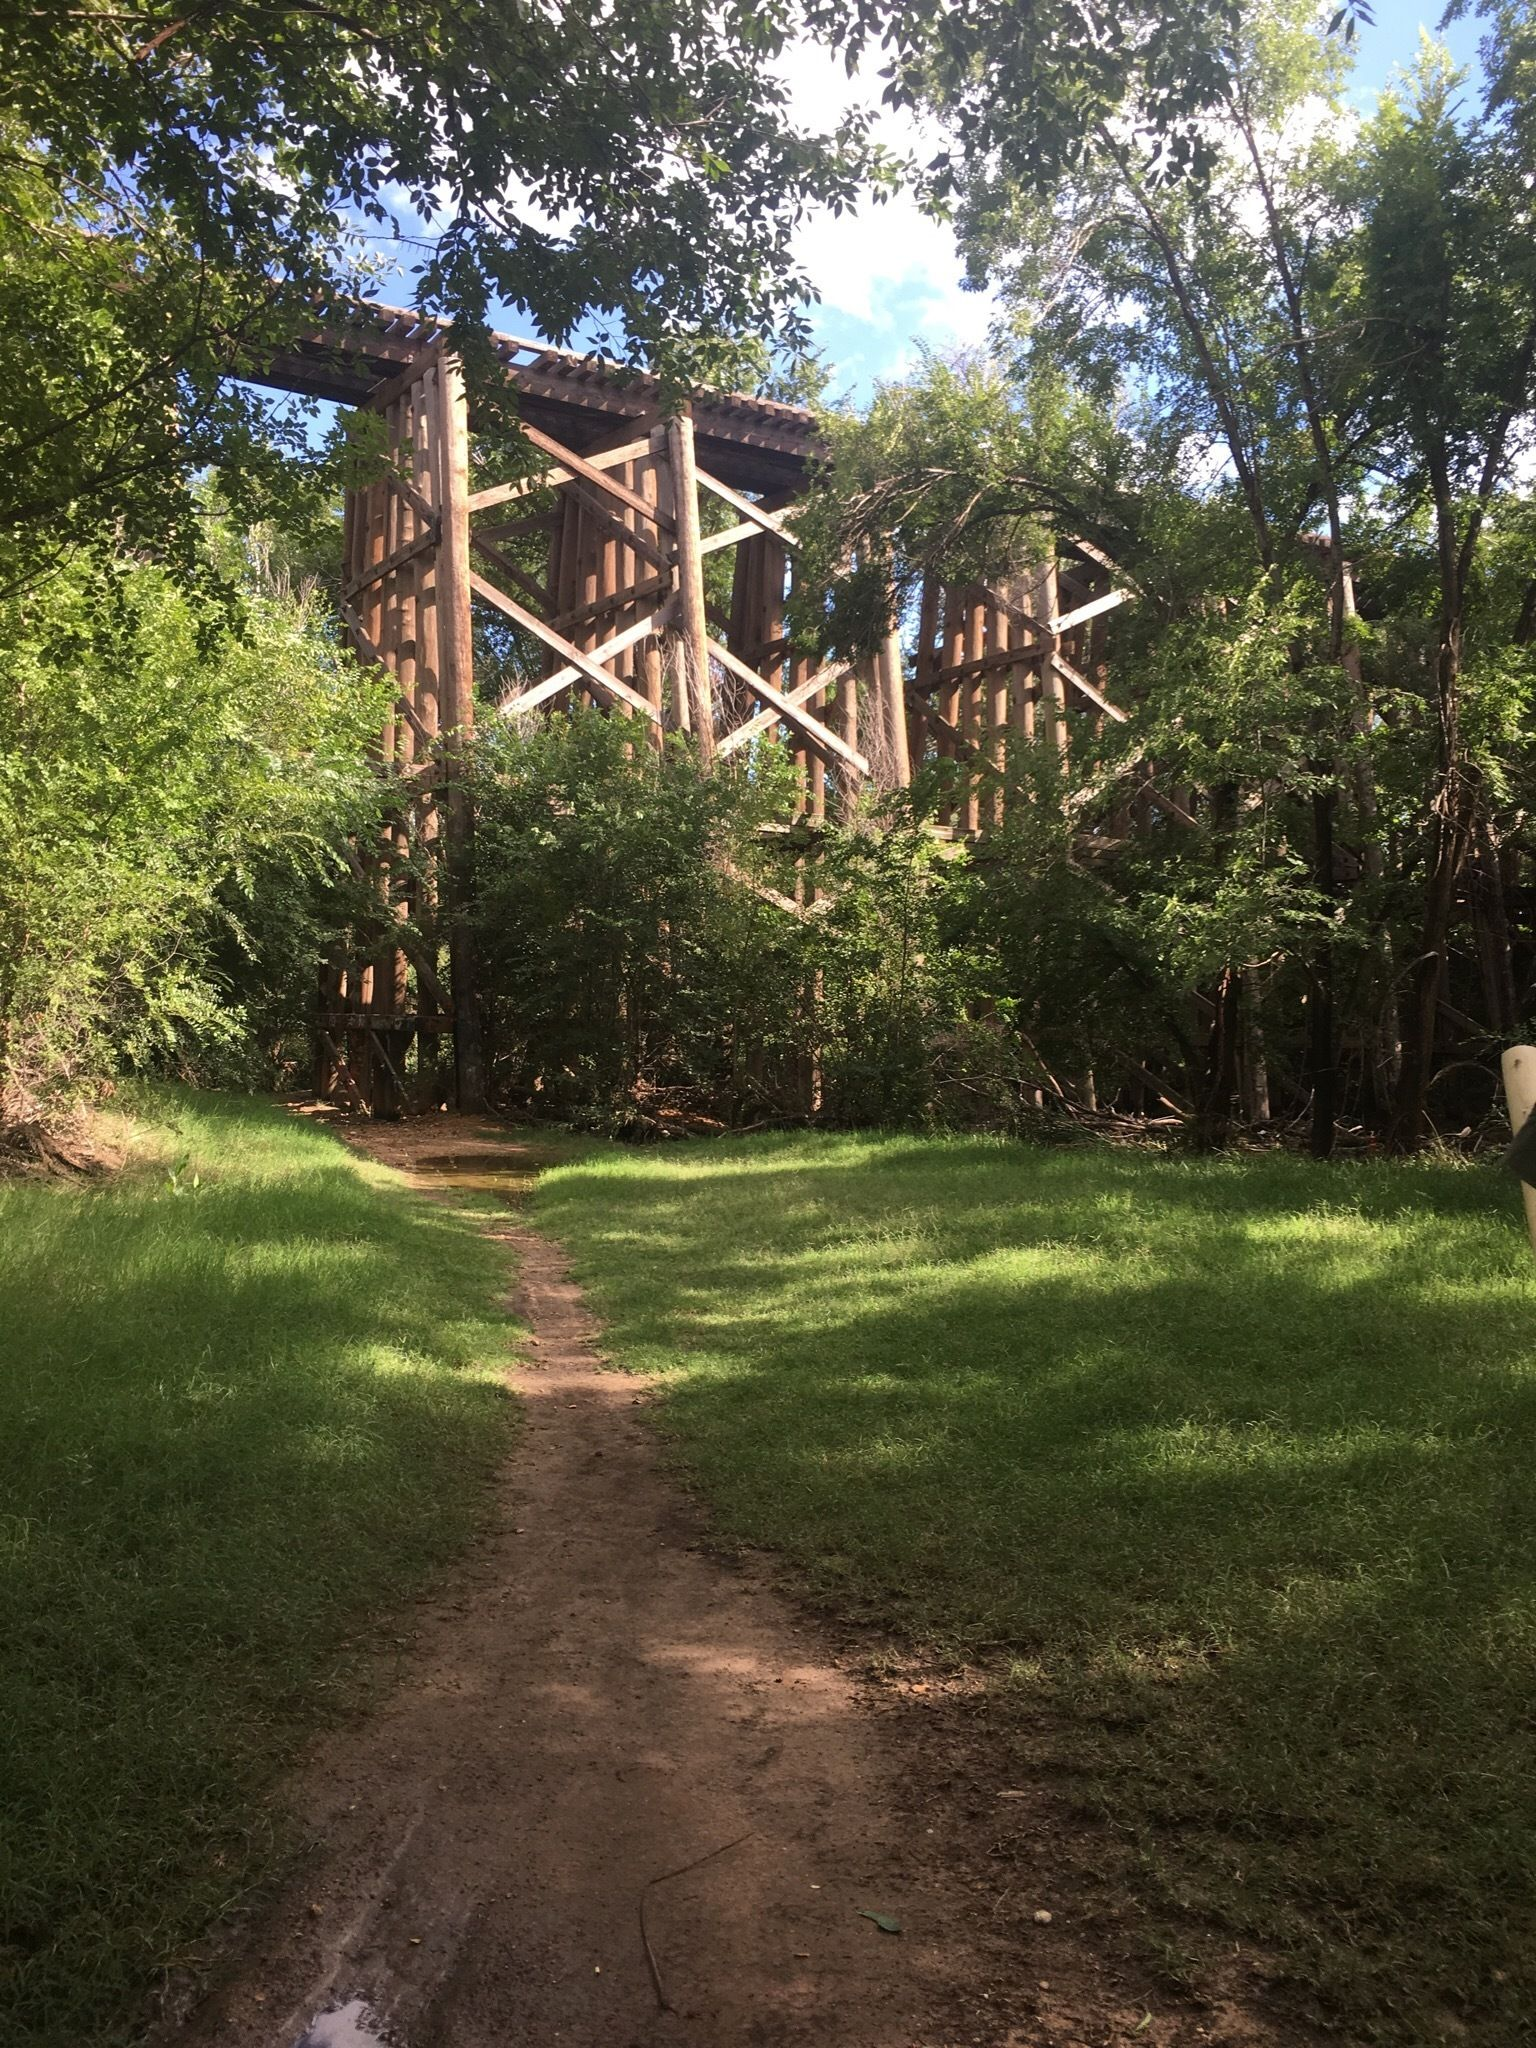 Best Trails near Lubbock, Texas | AllTrails